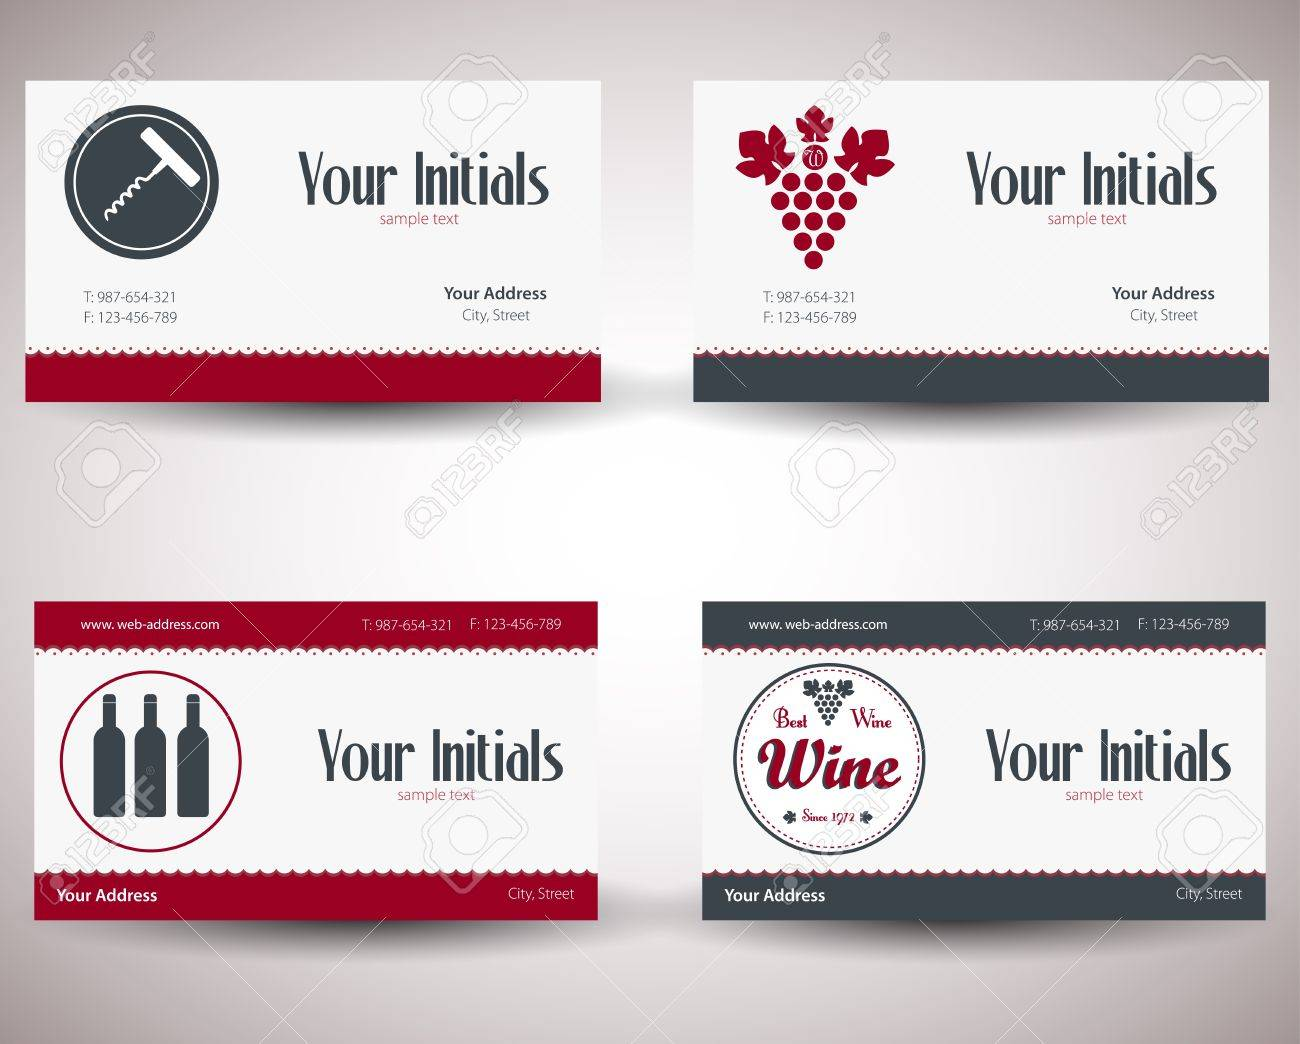 Retro Vintage Business Card For Wine Business. Royalty Free Cliparts ...